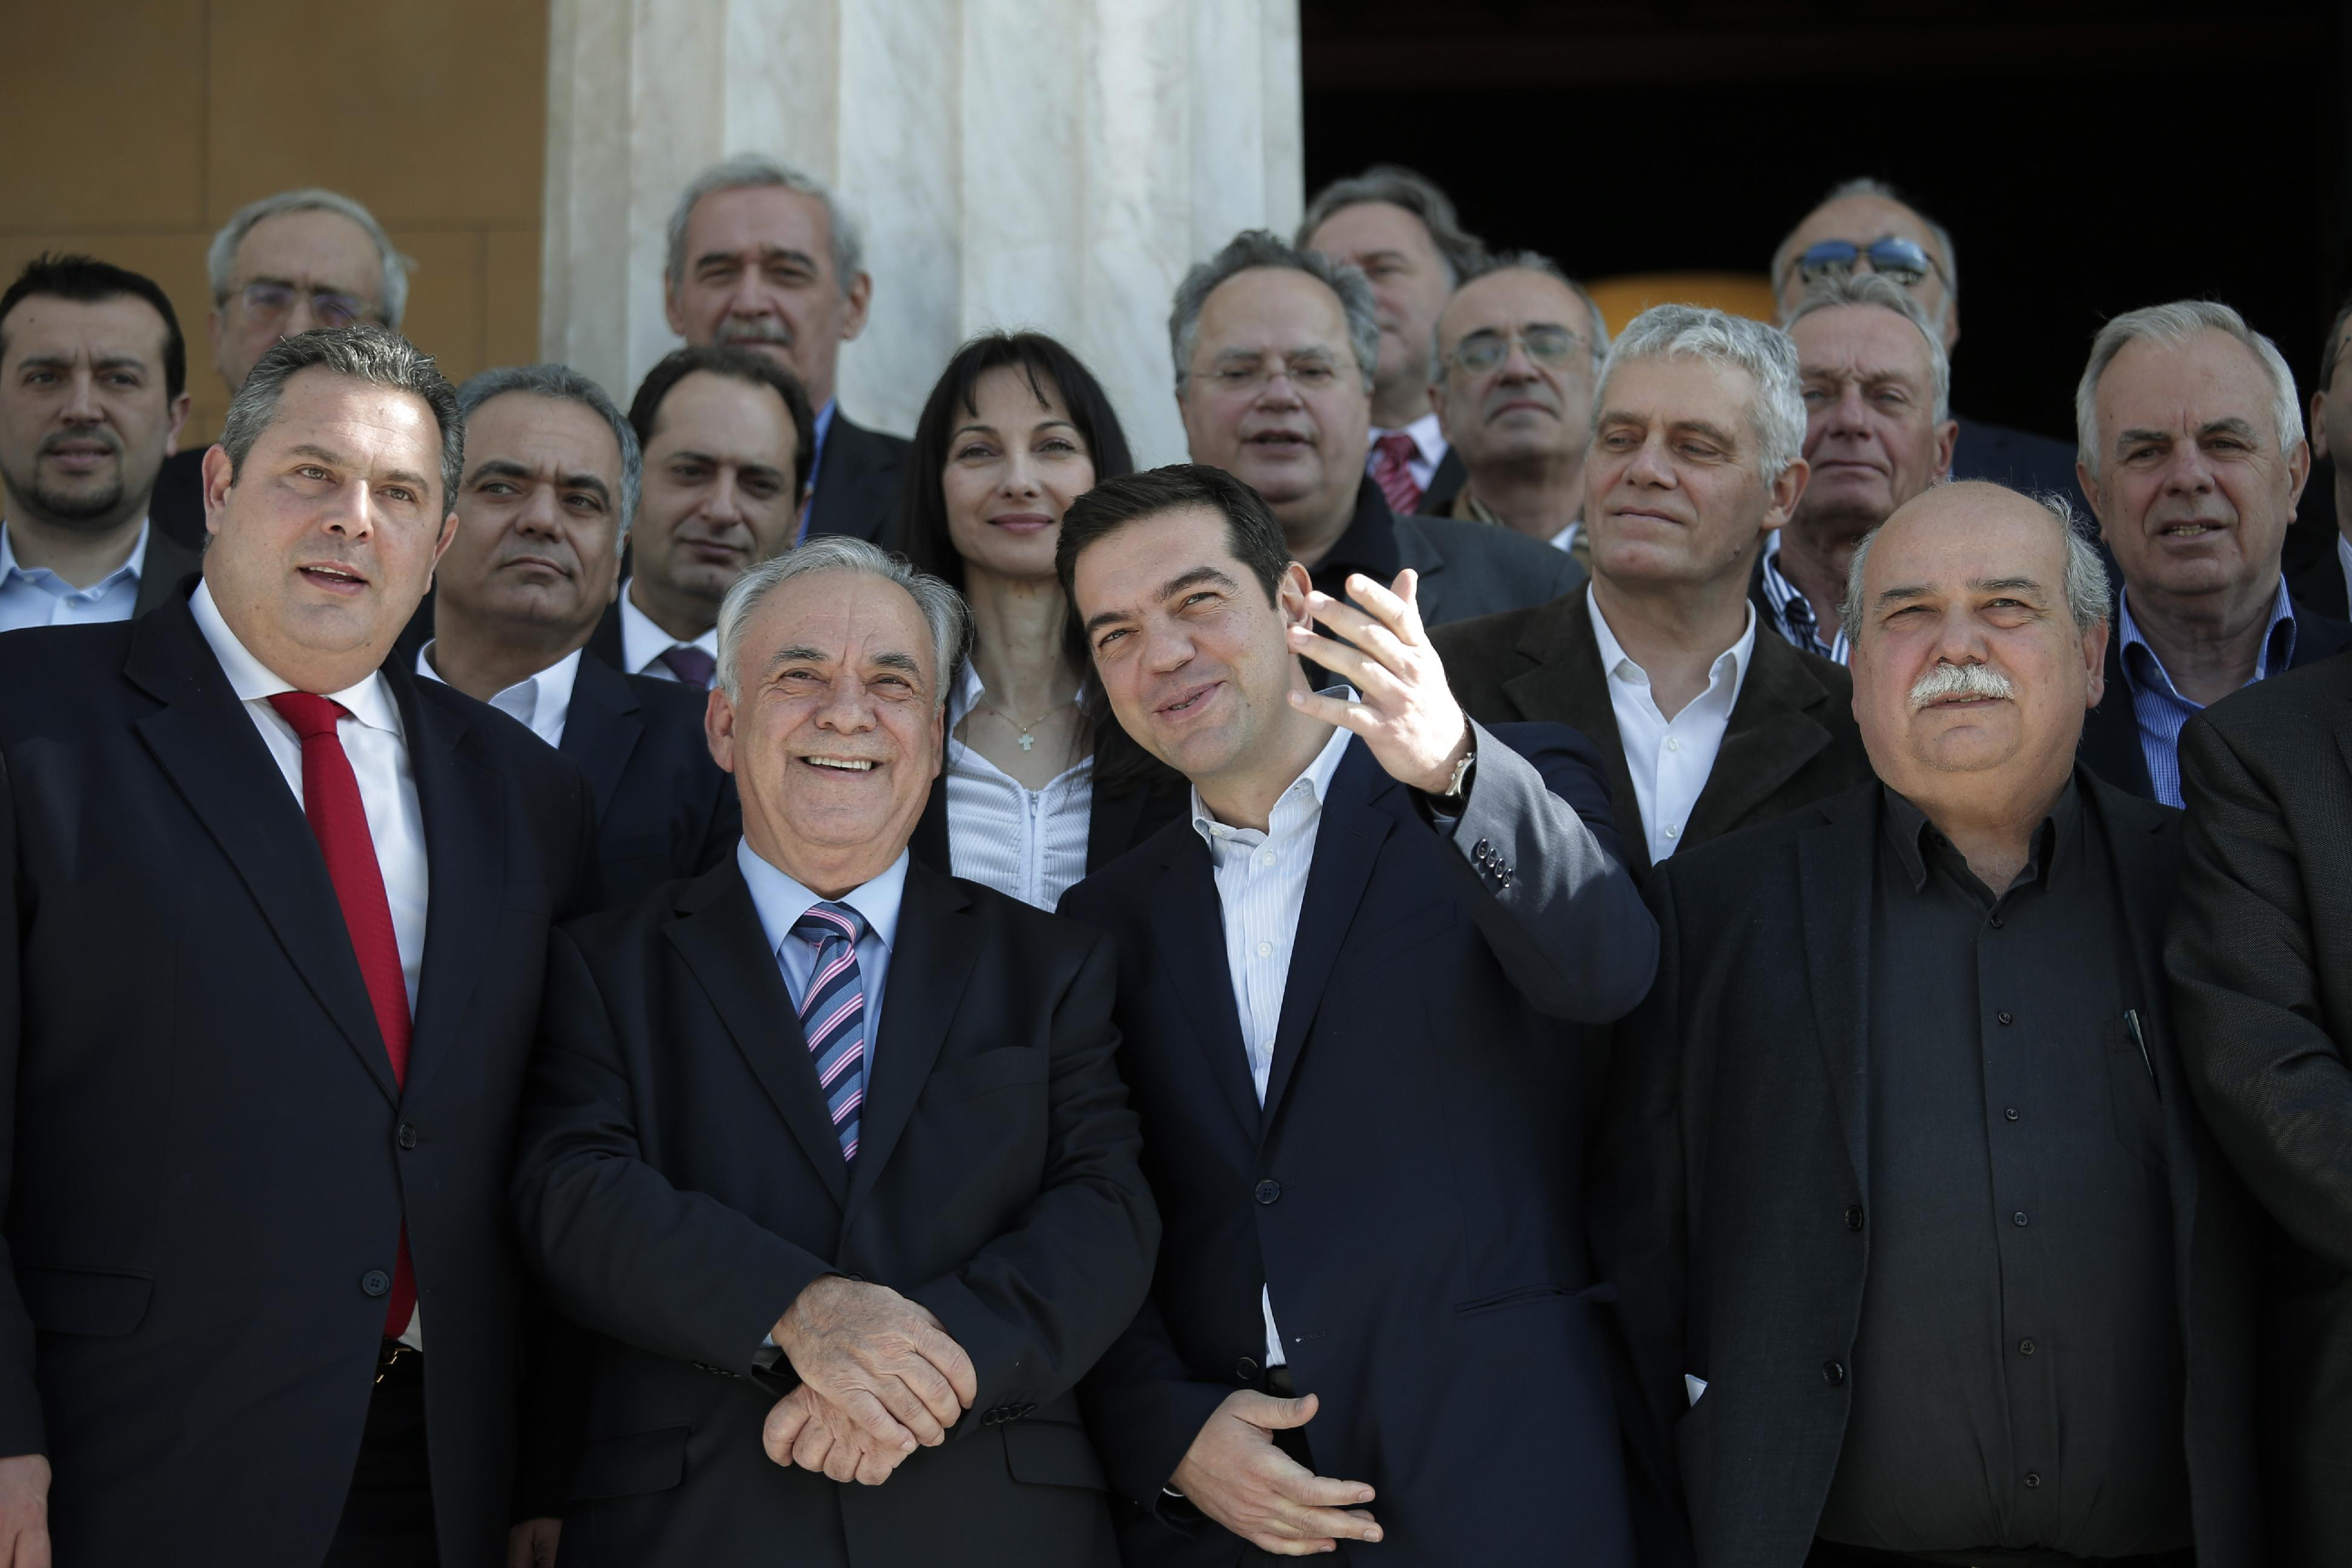 Greek bailout in focus as EU parliament head visits Athens